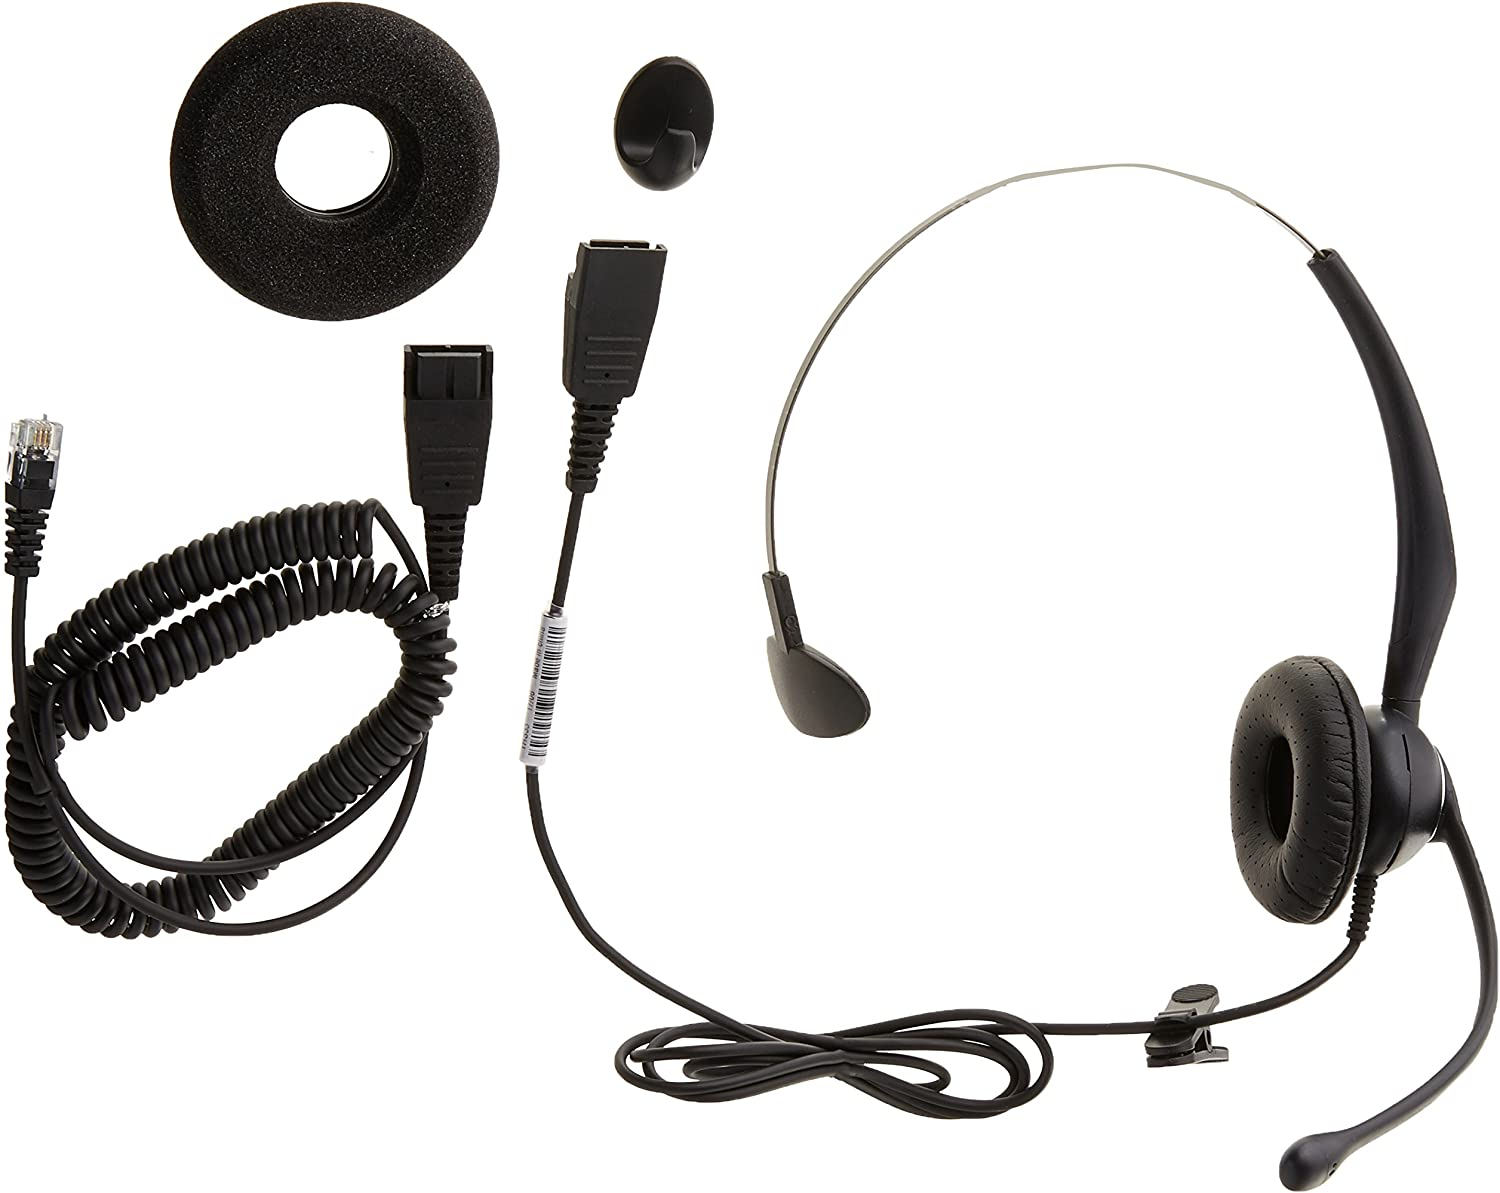 Yealink YHS33 Headset business for call 2020  wired headset for the office used and business calls one of the best for the every use